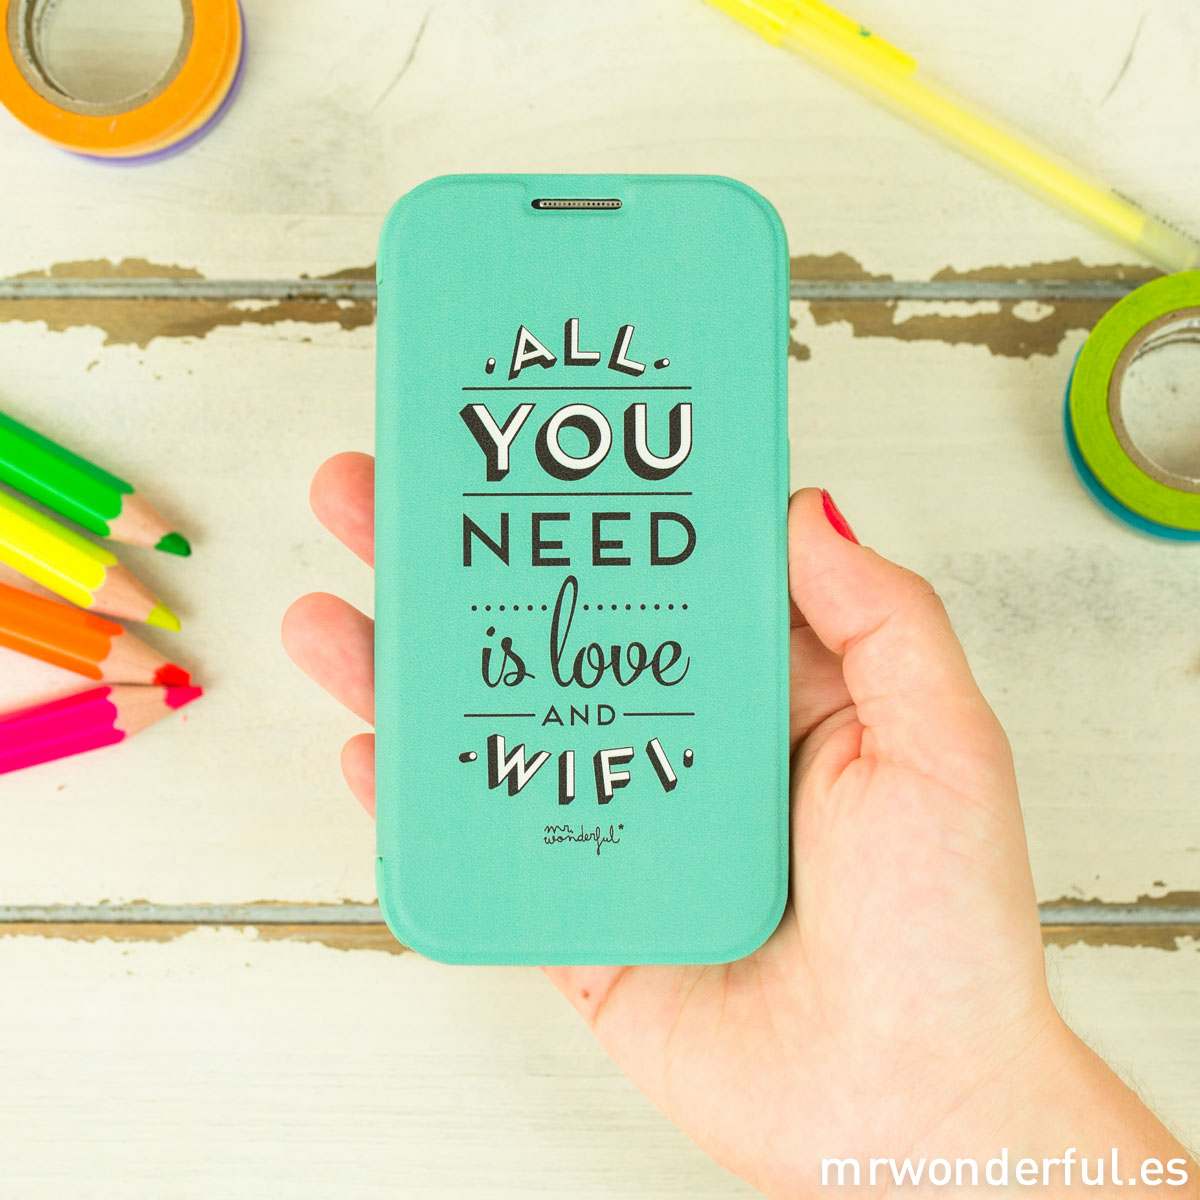 mrwonderful_MRFOL002_funda-mint-samsung-galaxy-S4_all-you-need-love-wifi-23